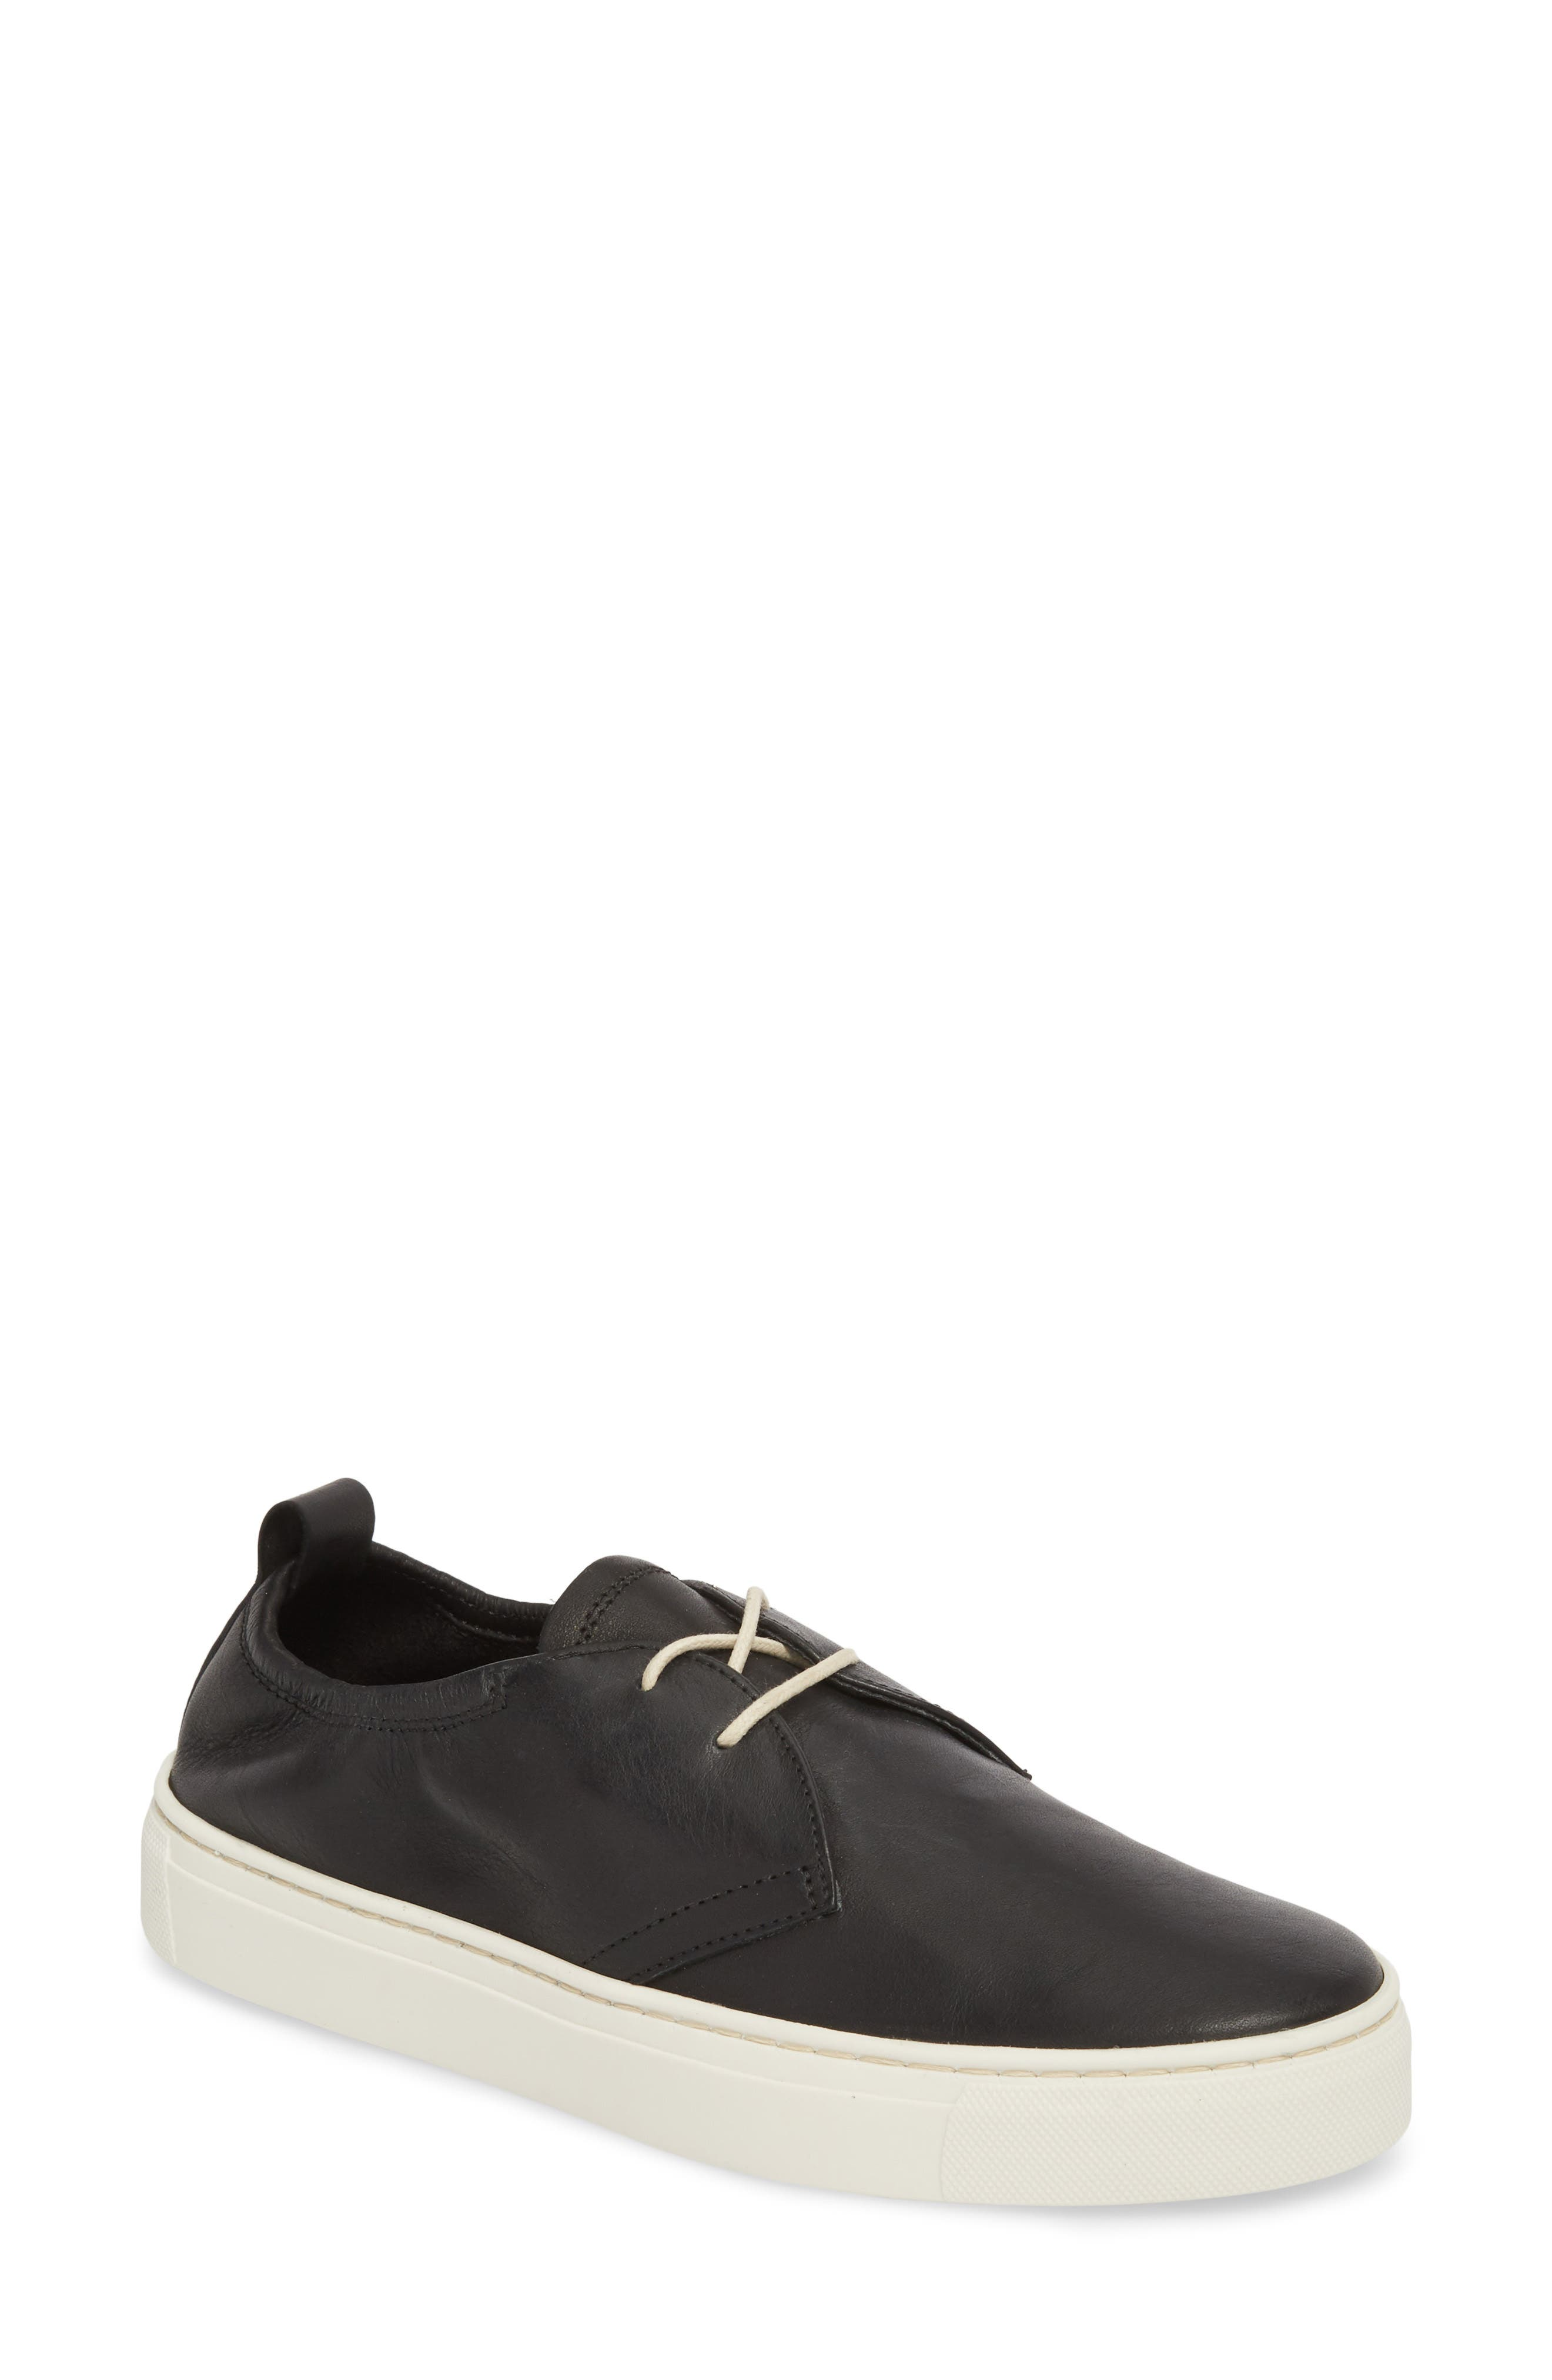 Sneak Up Sneaker,                         Main,                         color, BLACK LEATHER